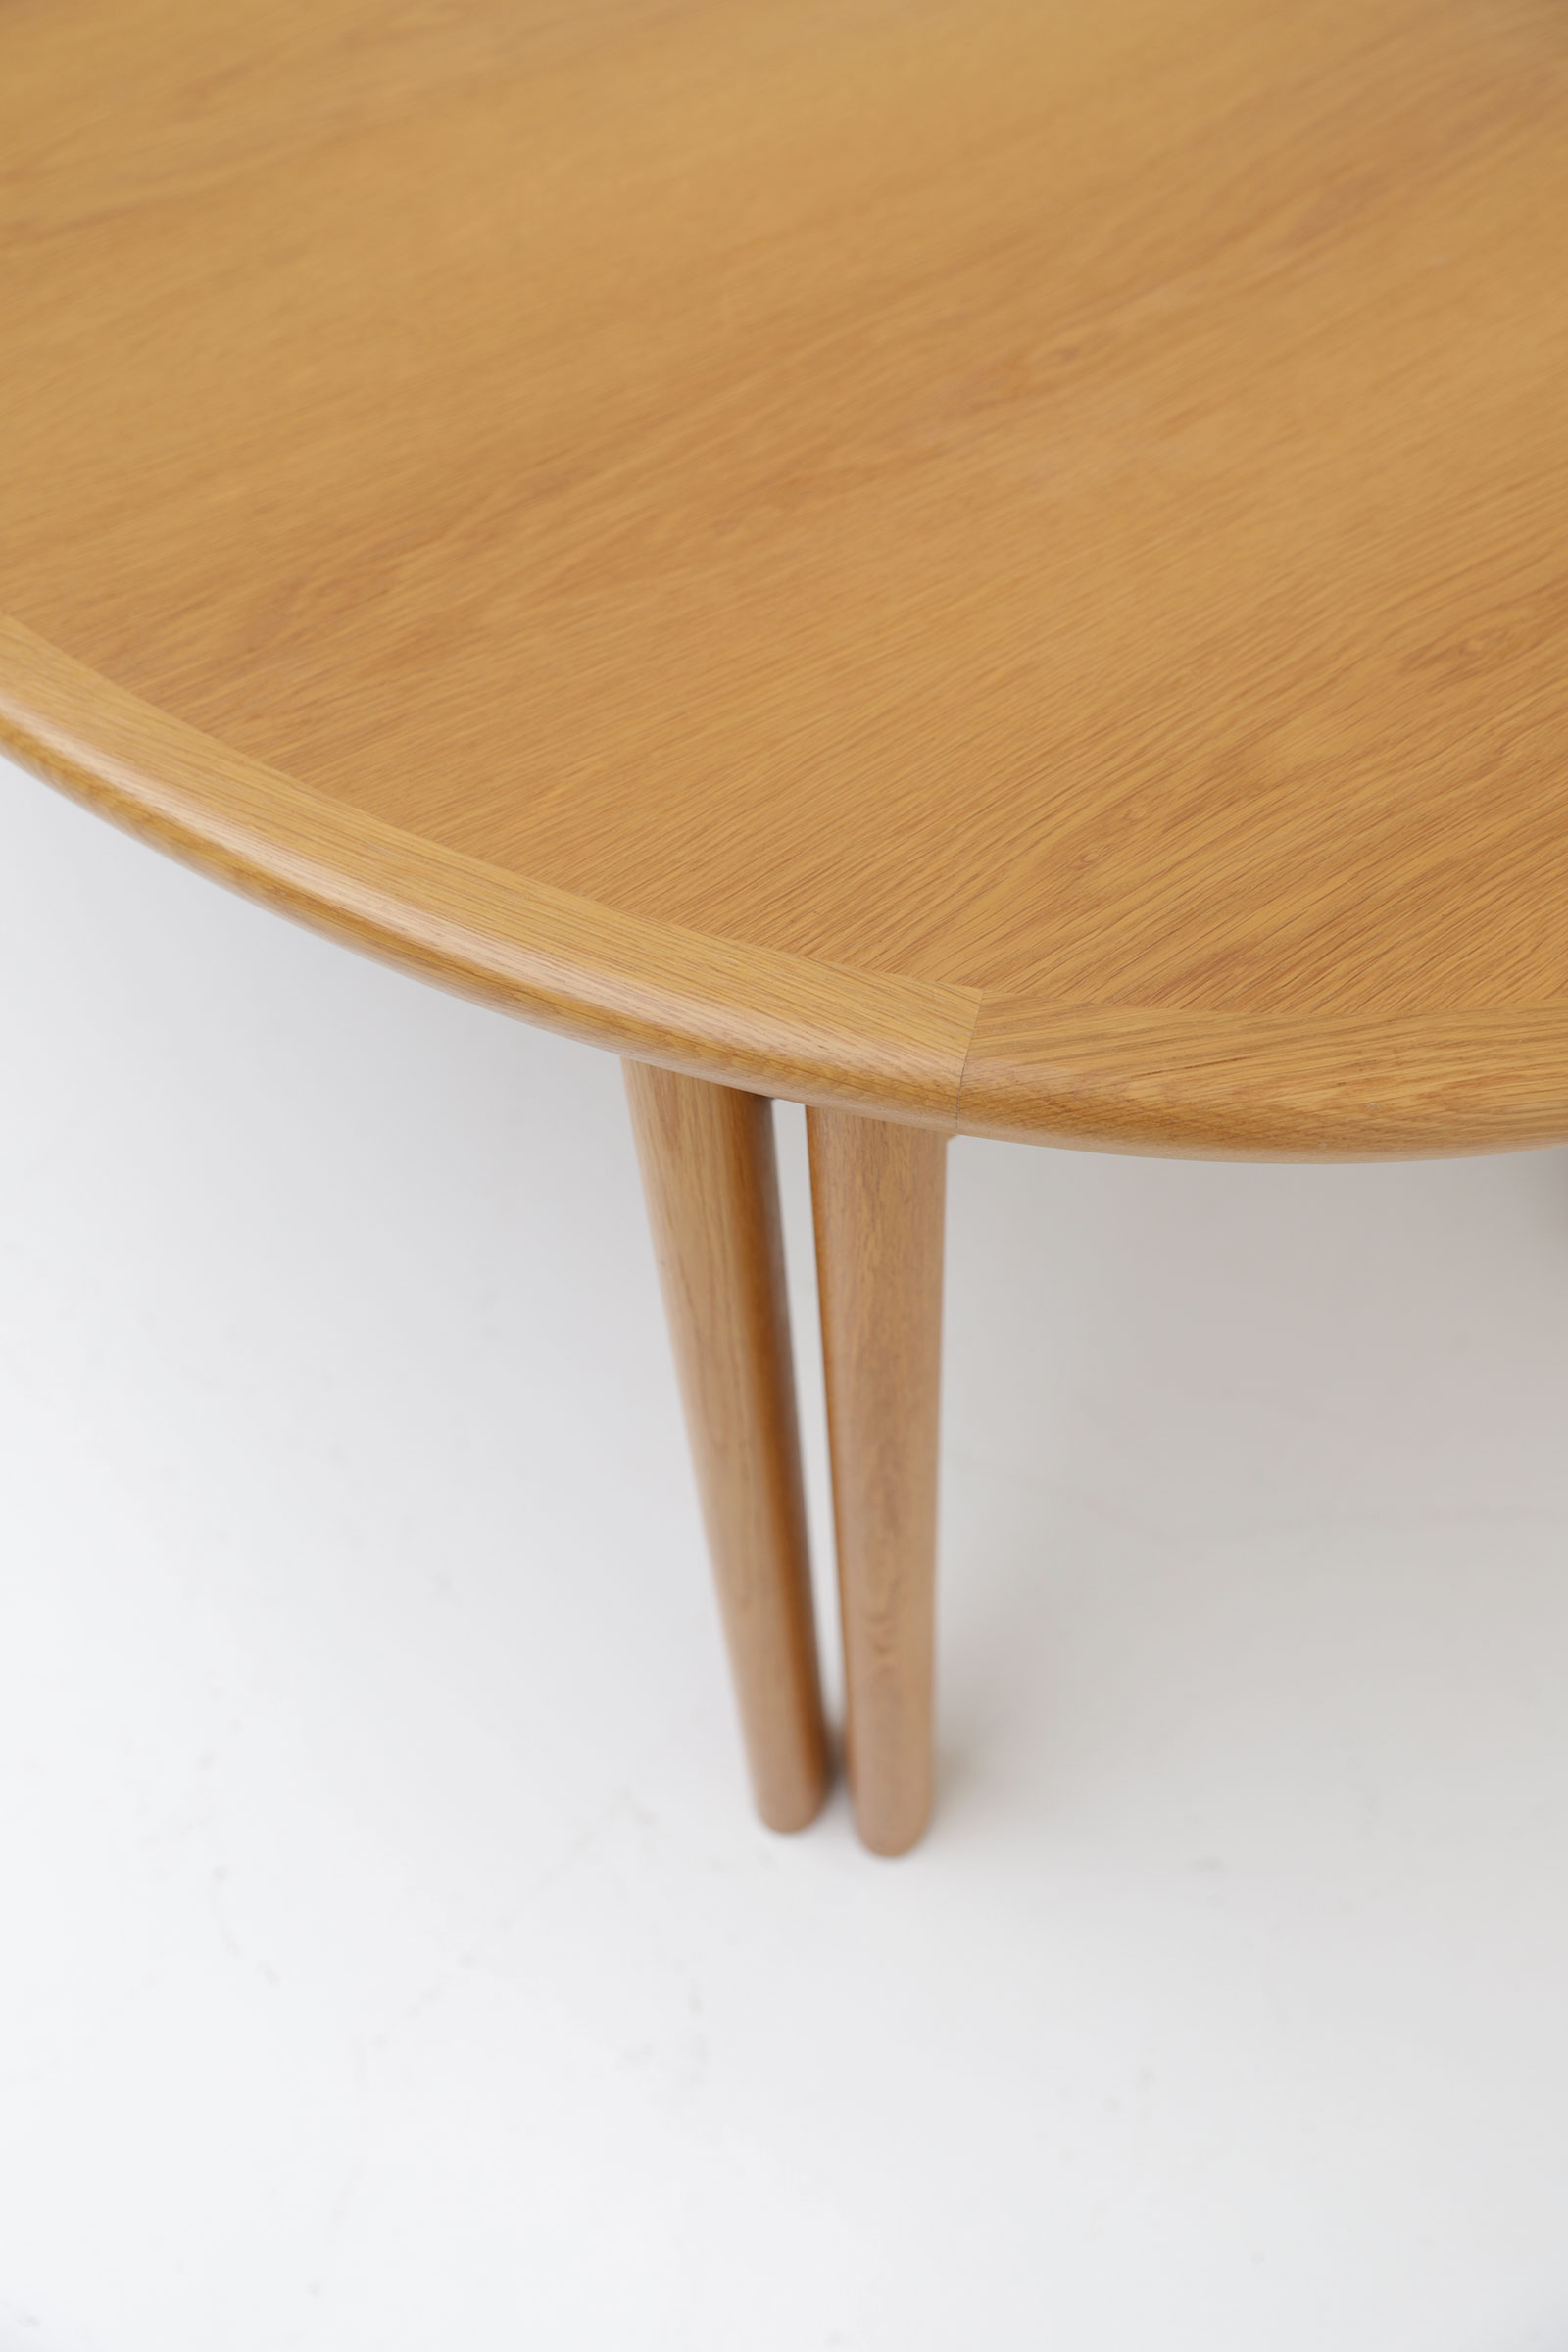 Oak Dining Table Van Den Berghe Pauversimage 3